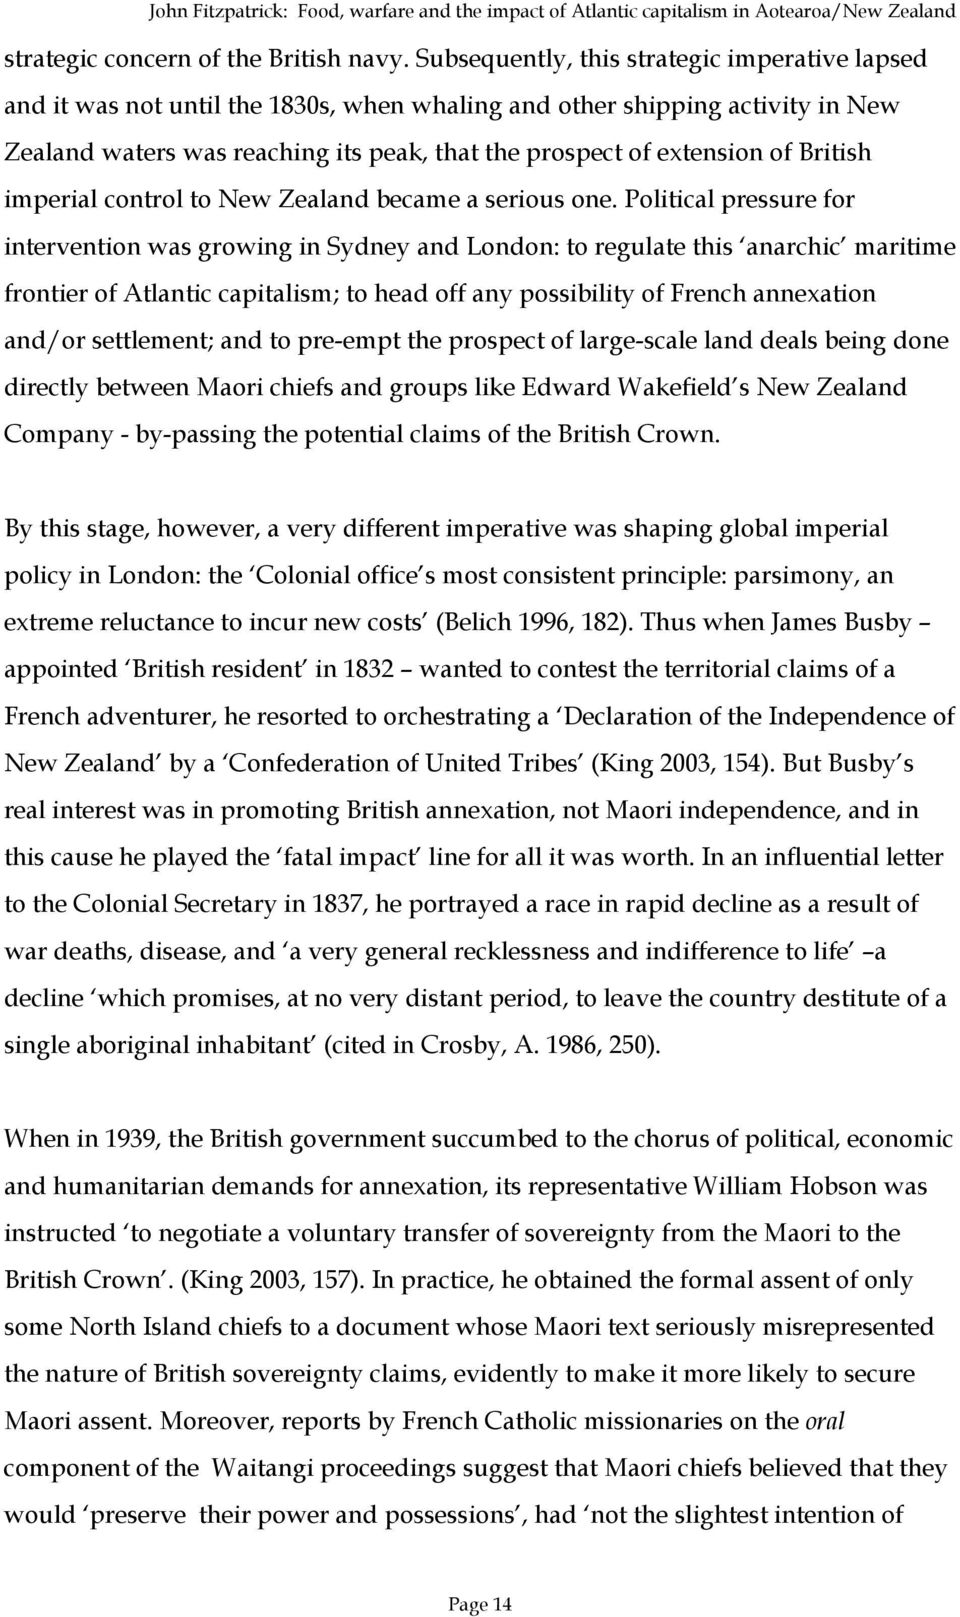 British imperial control to New Zealand became a serious one.